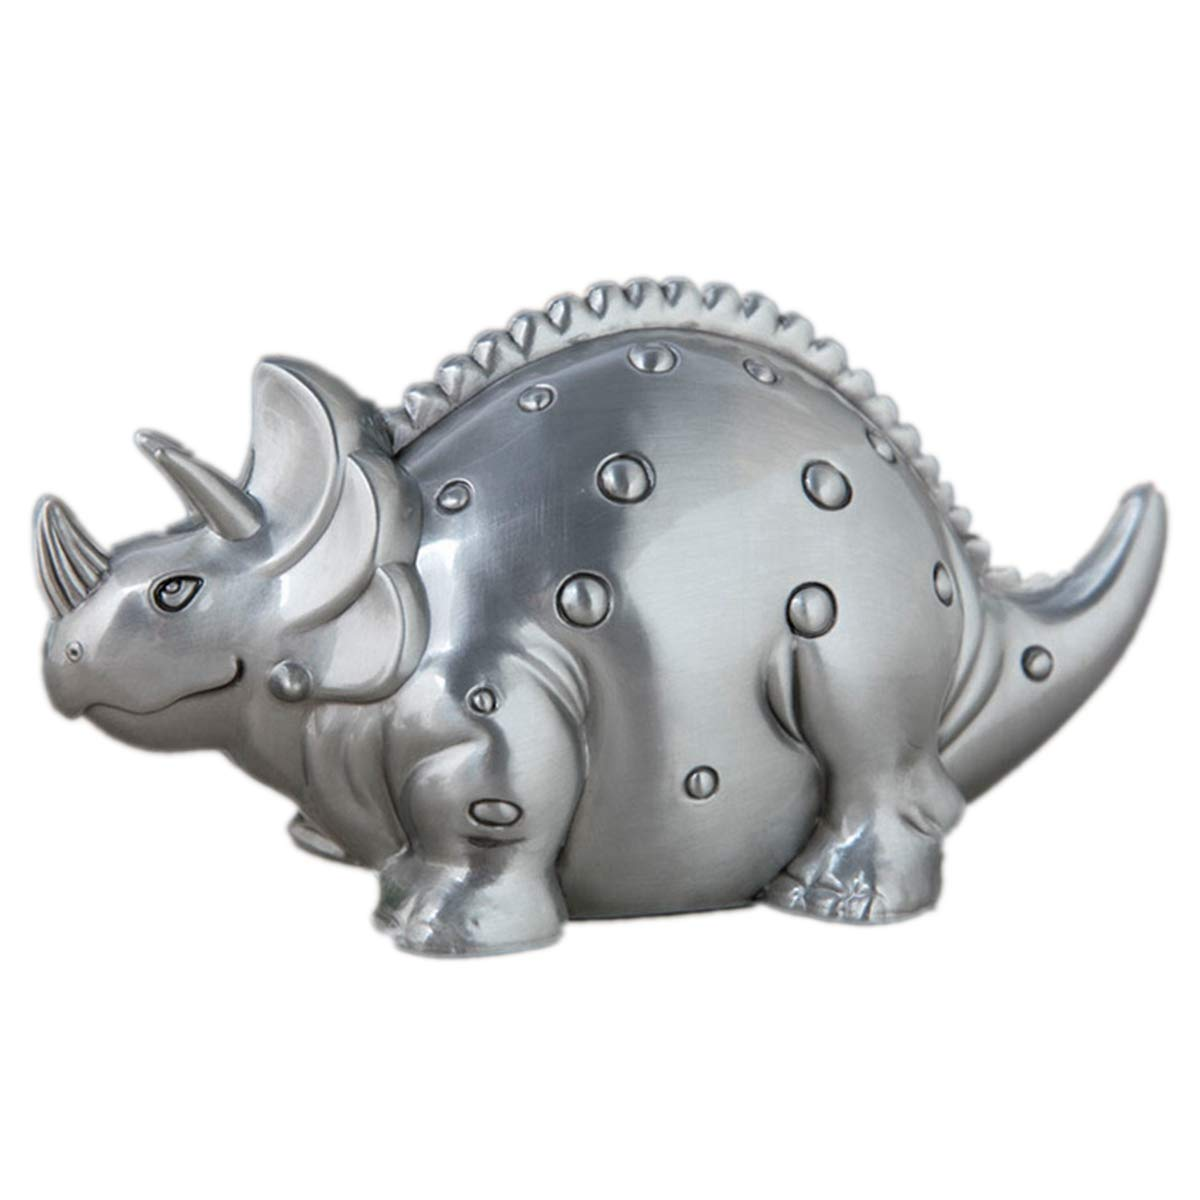 TYML Metal Piggy Bank with Cute Triceratops Dinosaur for Kids Boys Adult,Mini Silver Dollars Coin Money Saving Bank Ideas Fun Toys,Tincolor by TYML